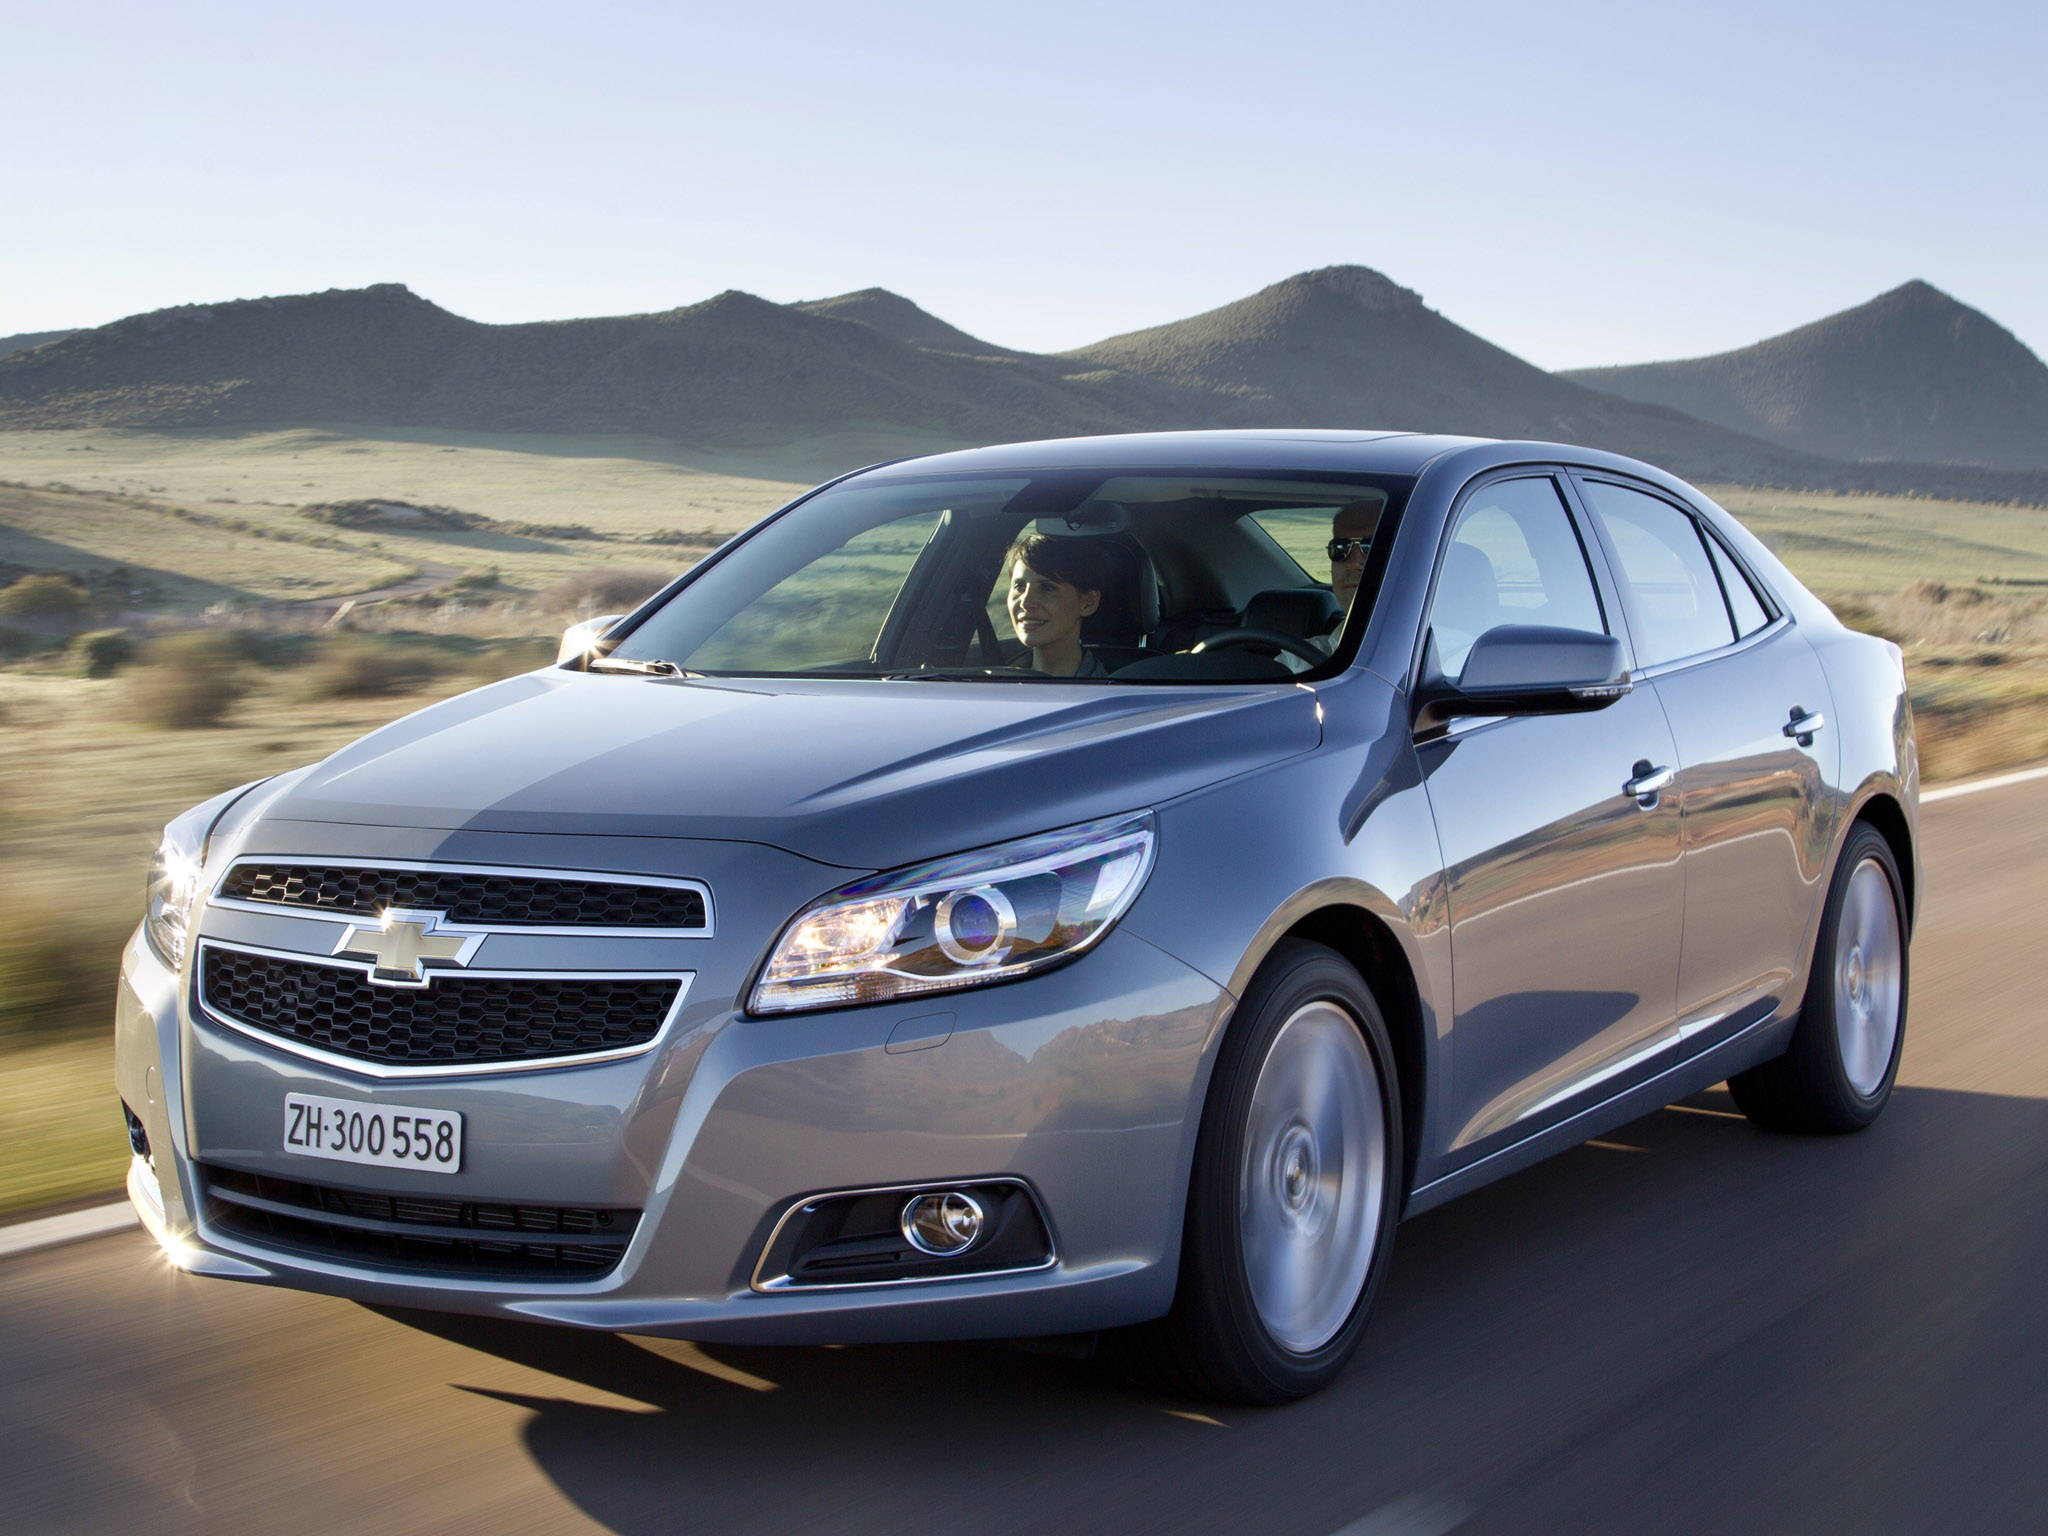 chevrolet malibu 2012 chevrolet malibu 2012 photo 27 car. Cars Review. Best American Auto & Cars Review